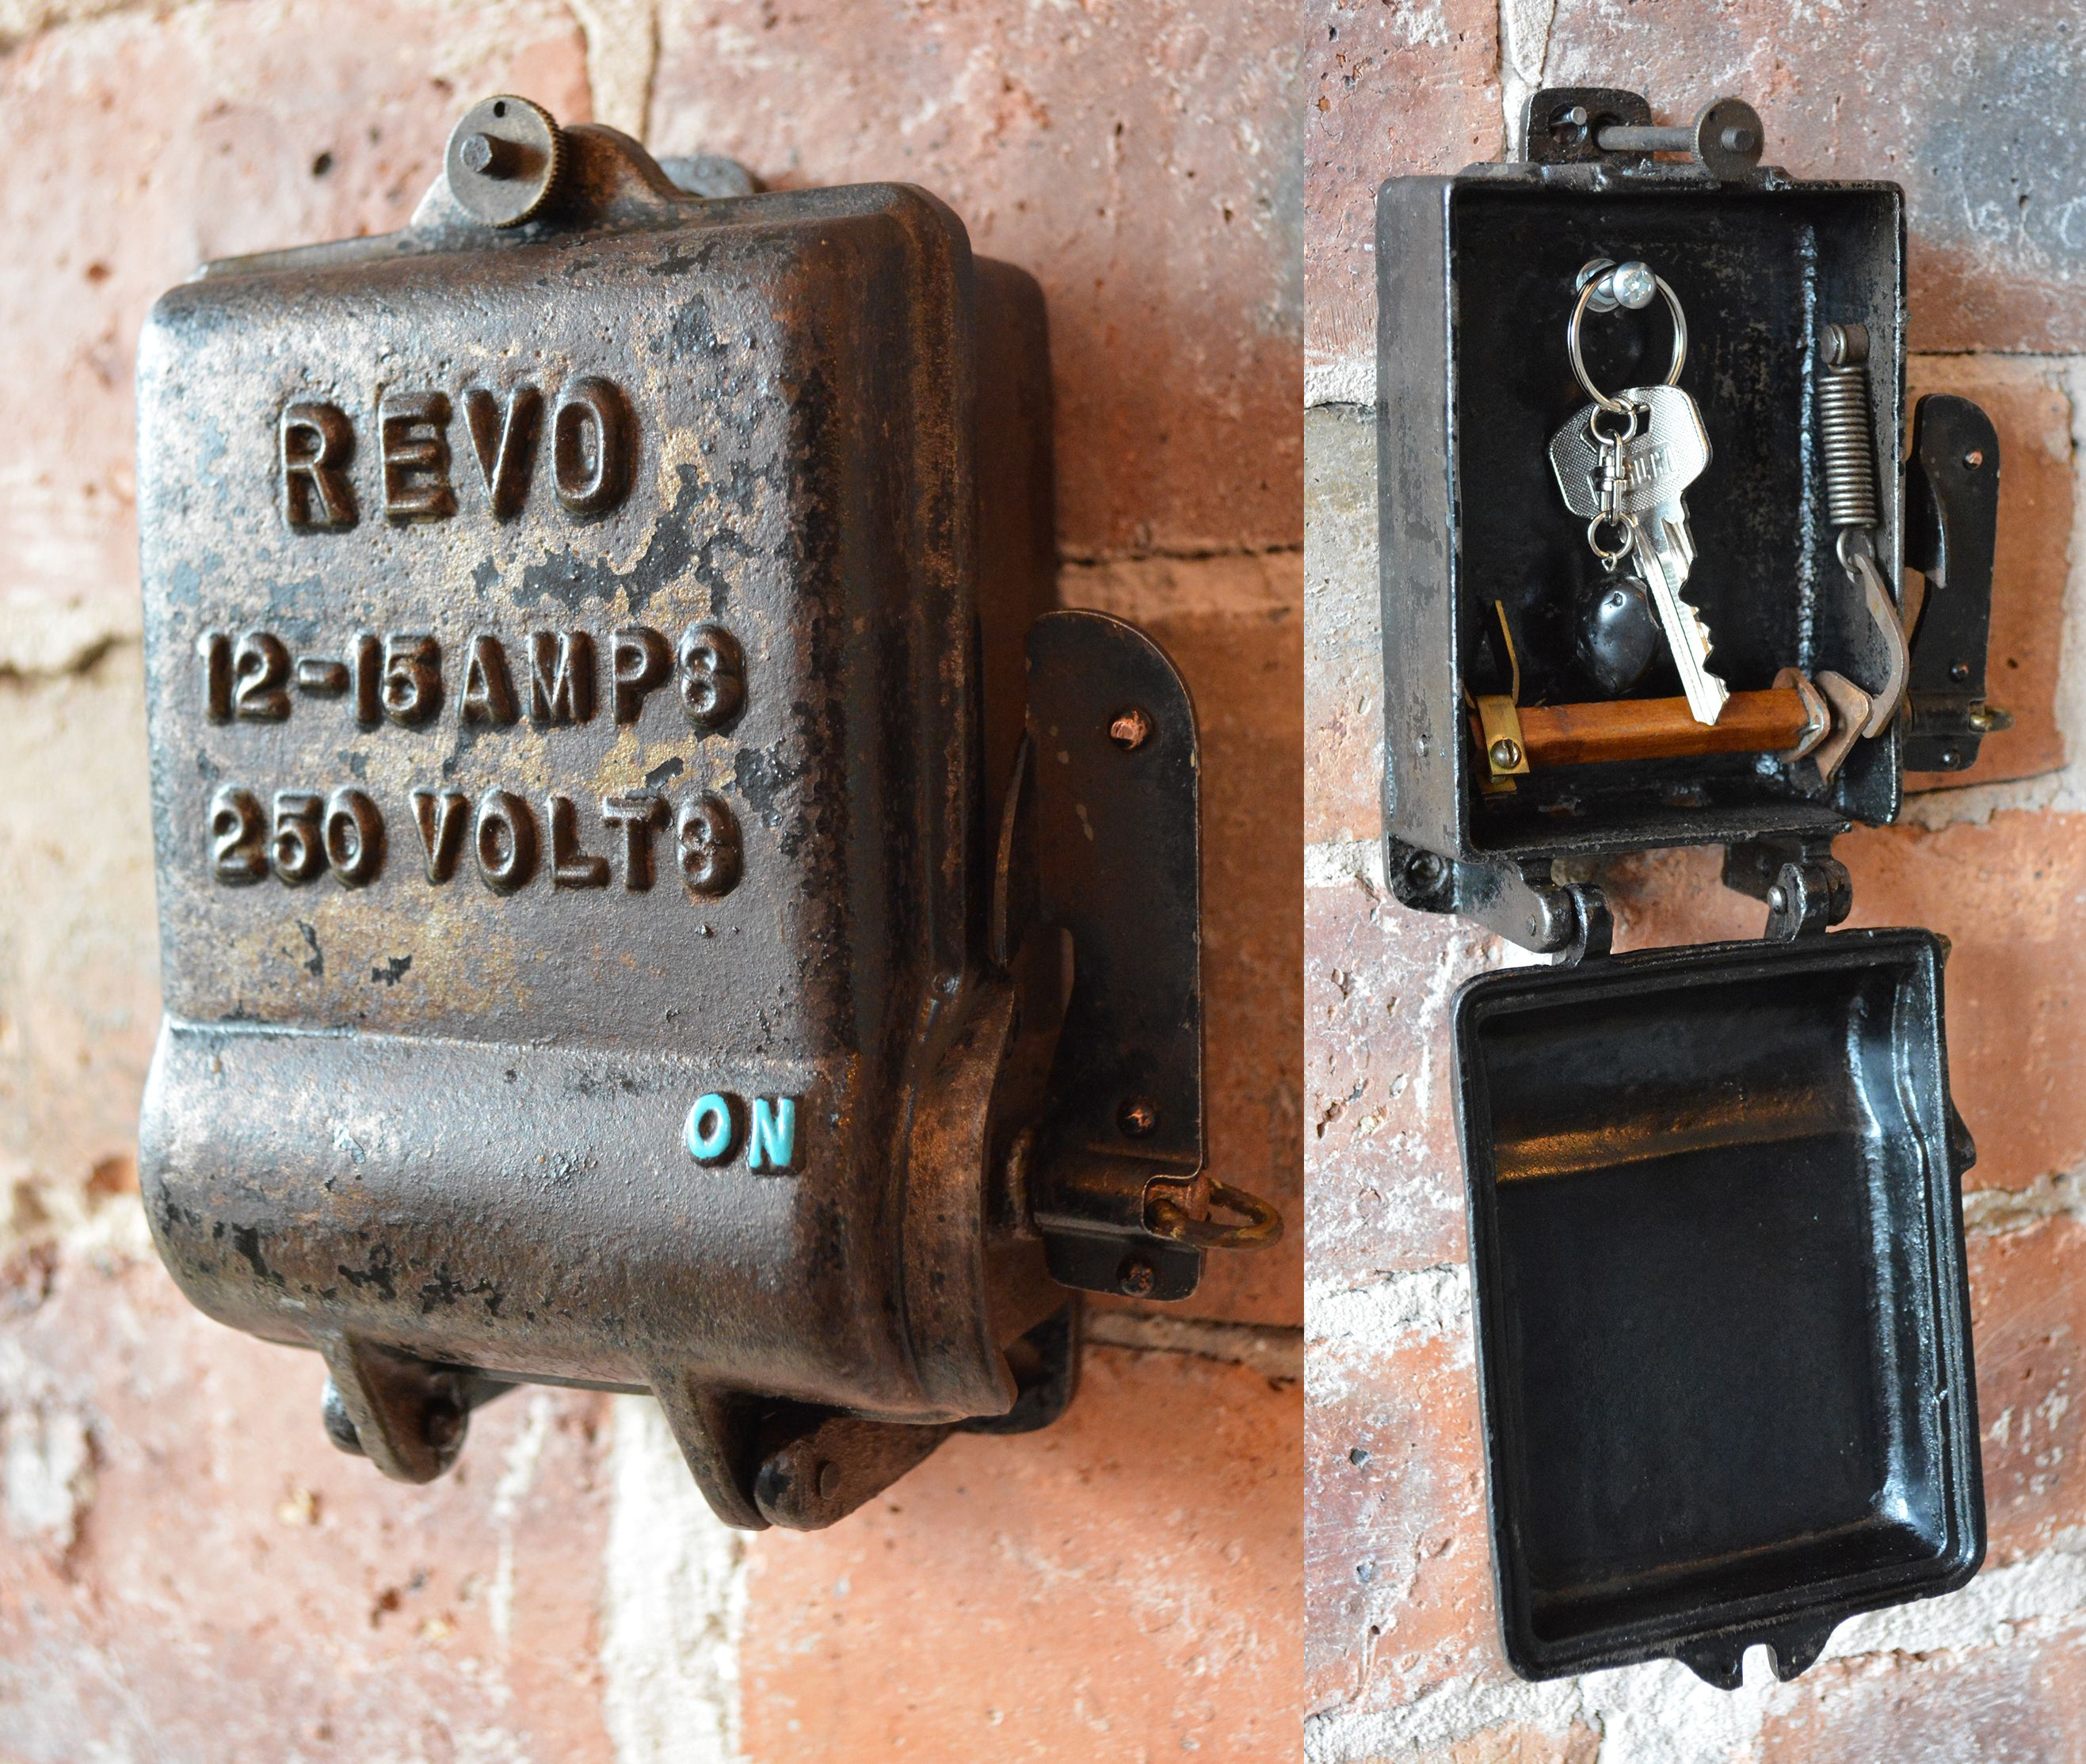 ddebd9ff65210514eb0d60b0b47283cd cast iron key storage converted from an antique 1940's revo fuse antique fuse box at mifinder.co